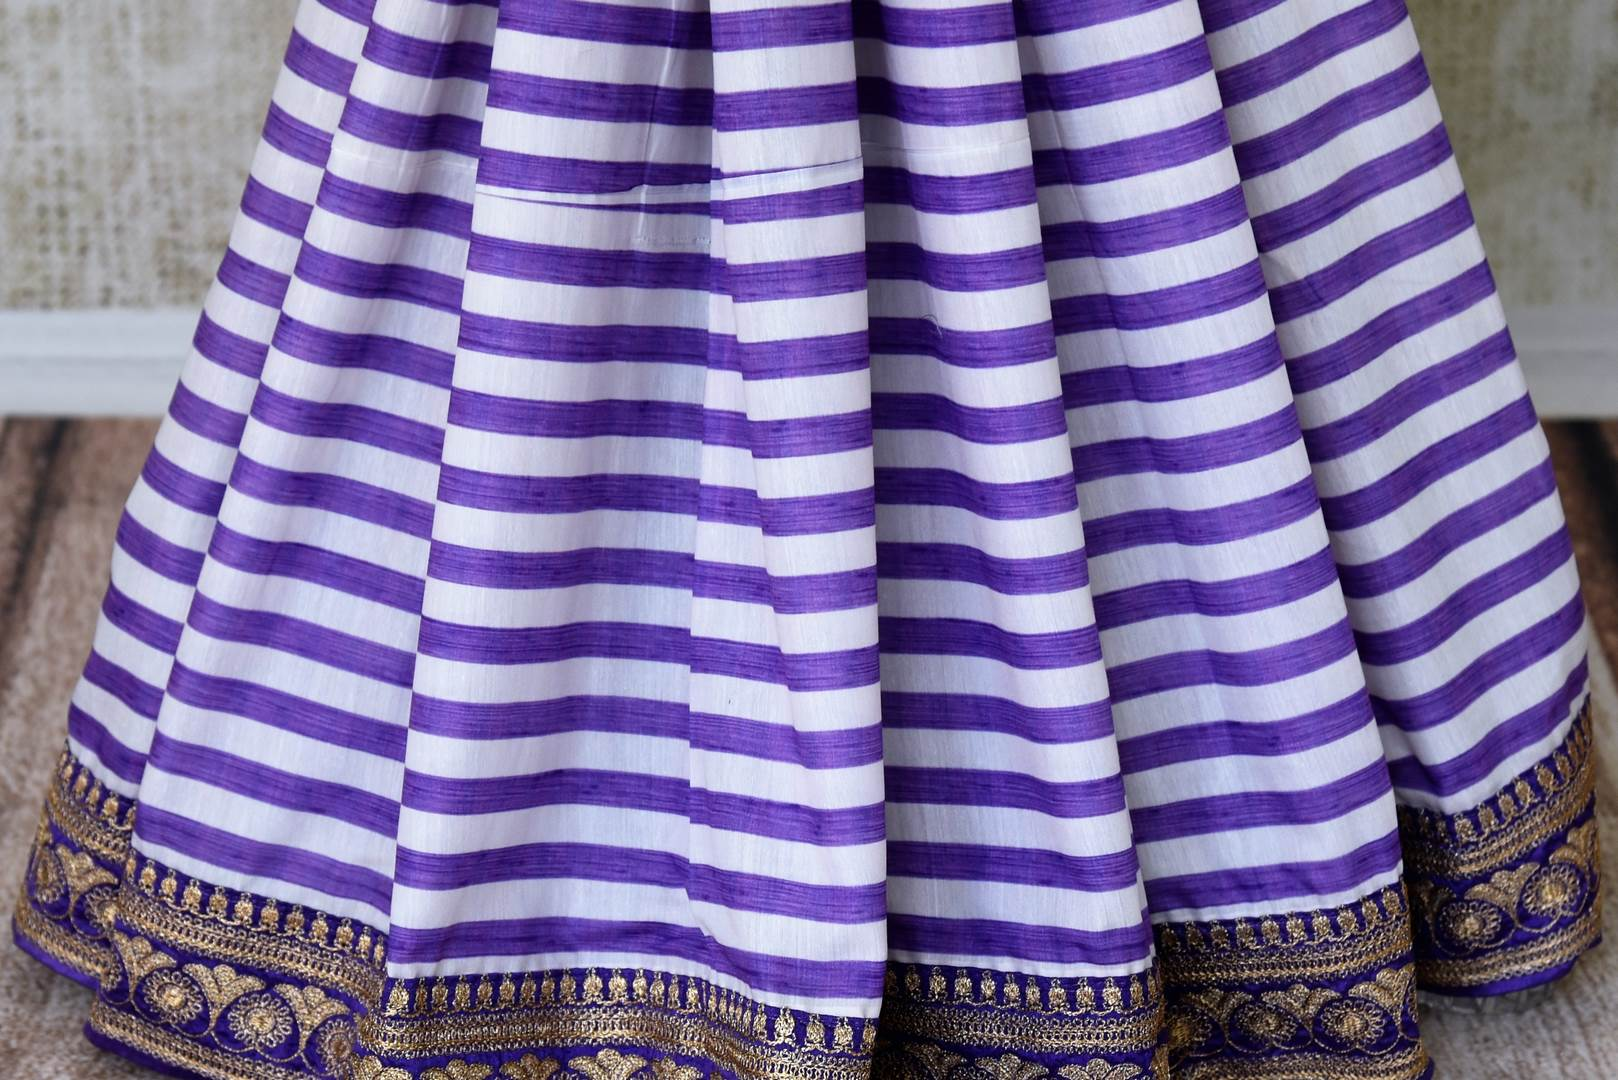 Buy purple and white stripes embroidered silk saree with blouse online in USA. Shop exclusive Indian designer saris, concept sarees, saree sets in USA at Pure Elegance clothing store. Explore a range of traditional Indian women clothing also available at our online store. Shop now.-pleats